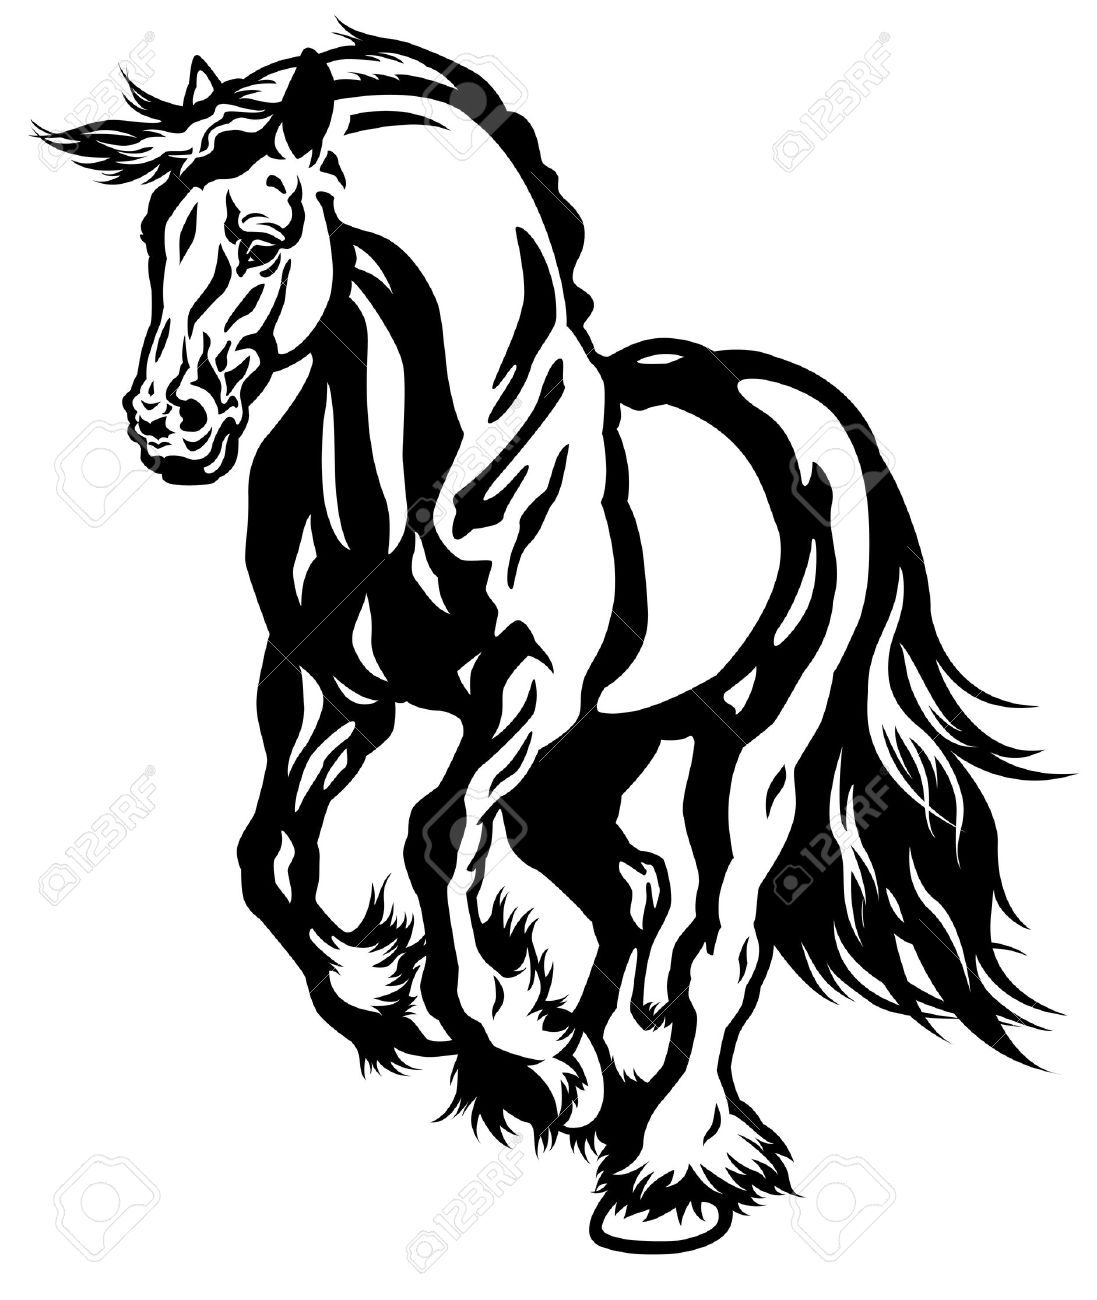 Horse Head Silhouette Free at GetDrawings.com | Free for personal ...